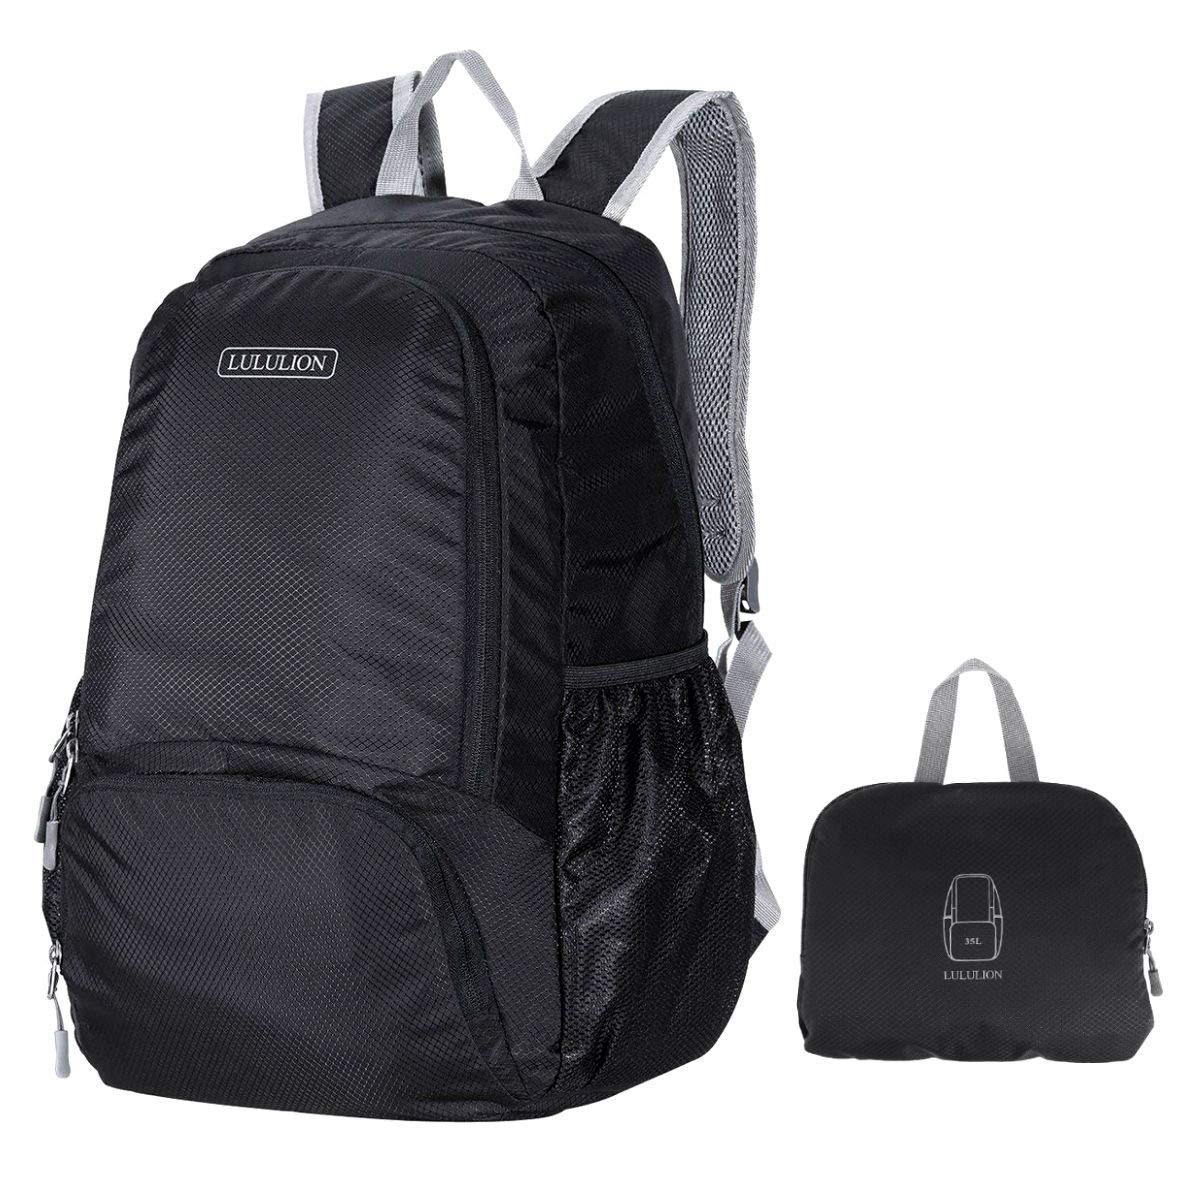 6a2719c11508 Get Quotations · Foldable Hiking Backpack